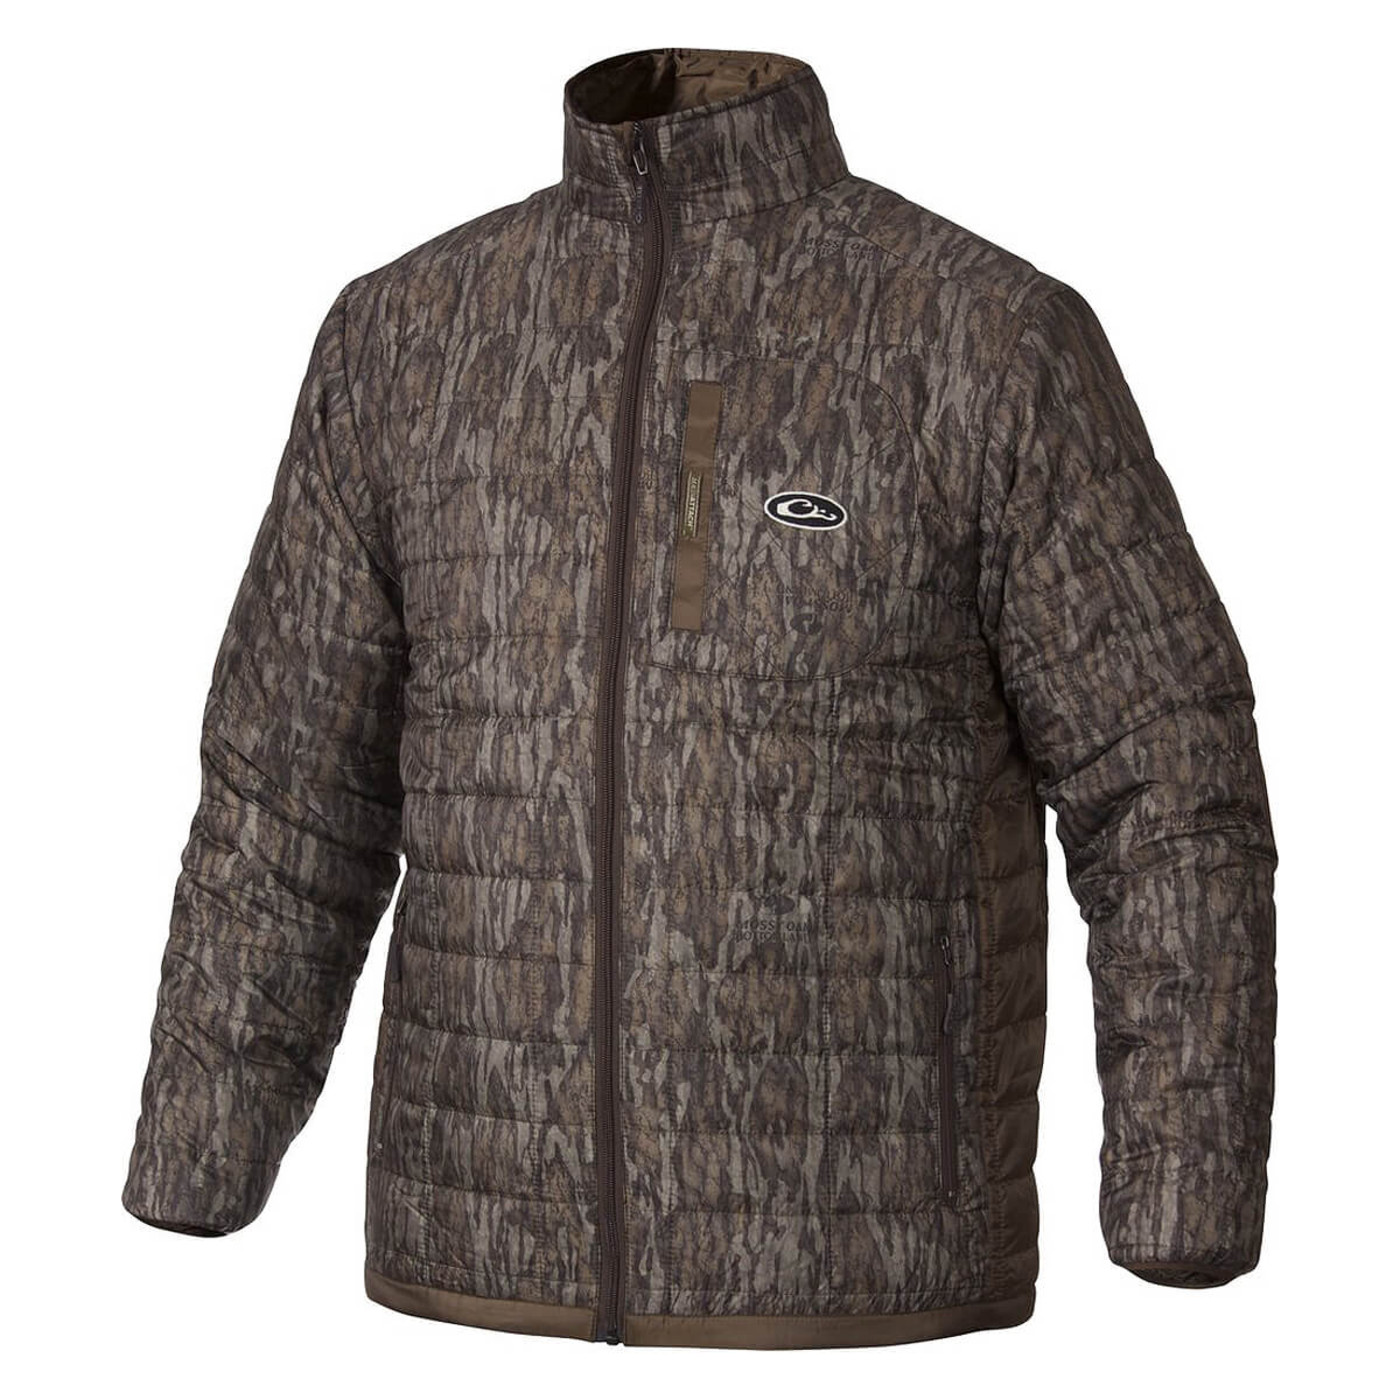 Drake MST Synthetic Down Packable 2-Tone Jacket in Mossy Oak Bottomland Color